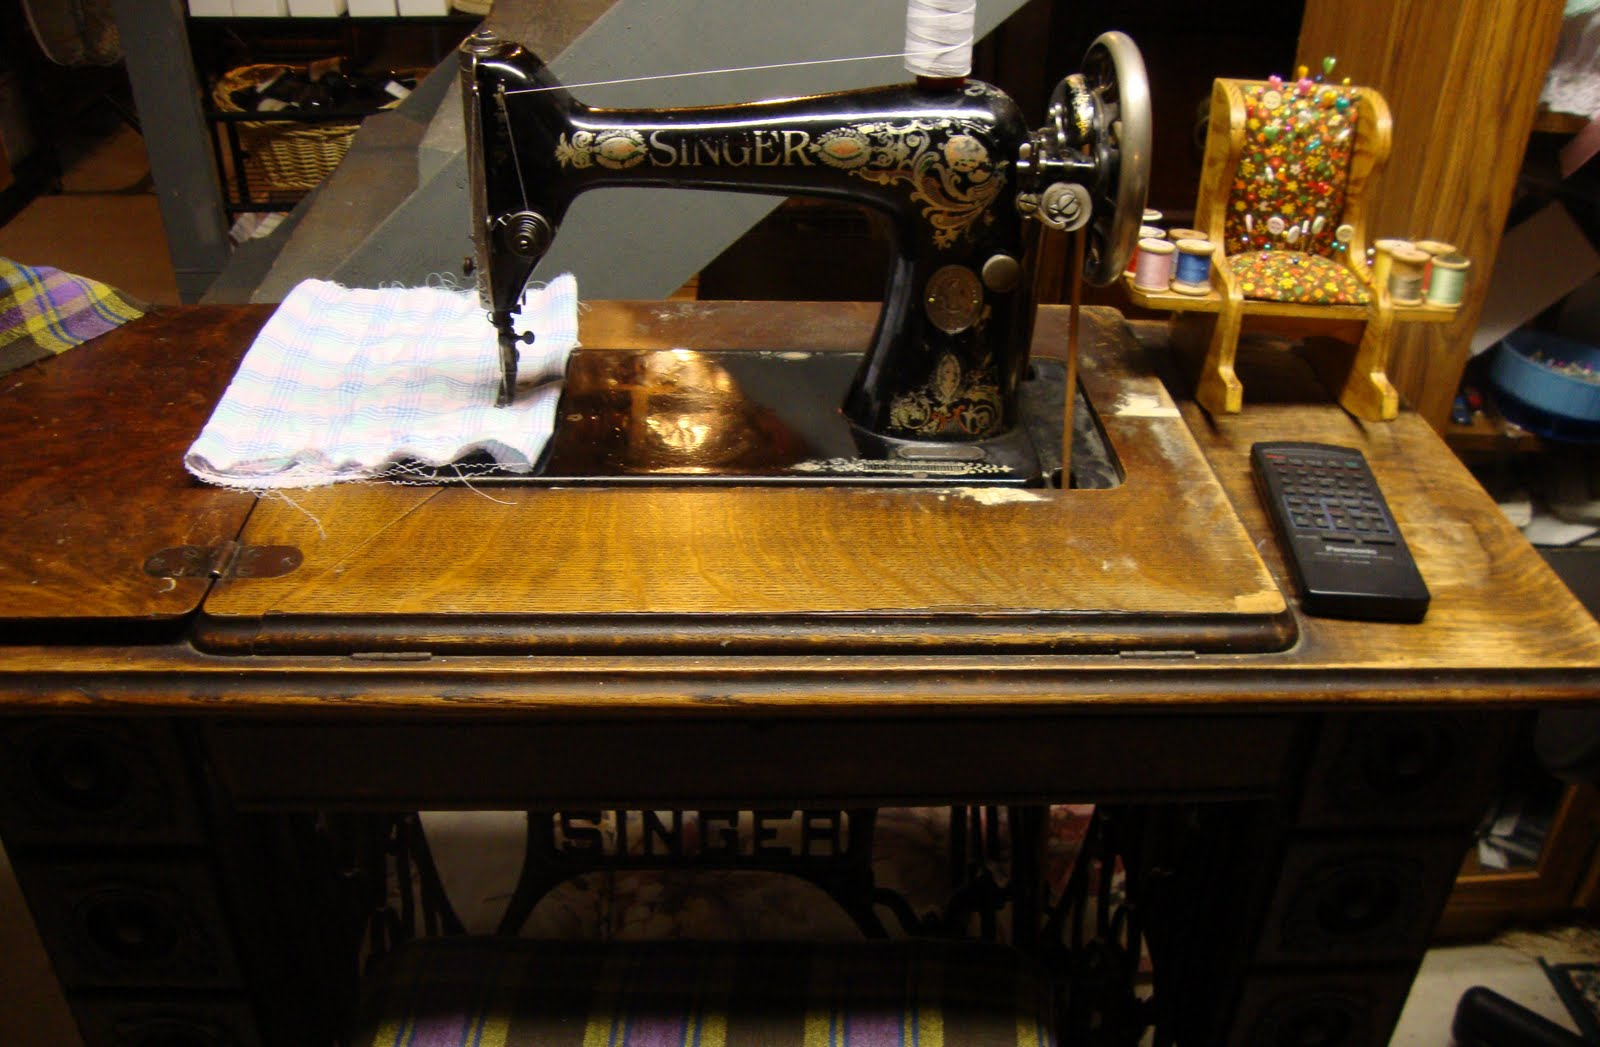 Modern day laura my sewing machine collection 1917 singer 66 red eye treadle i bought this on craigslist its not perfect but it sews beautifully the class 66 machines are my favorite for their ease fandeluxe Gallery